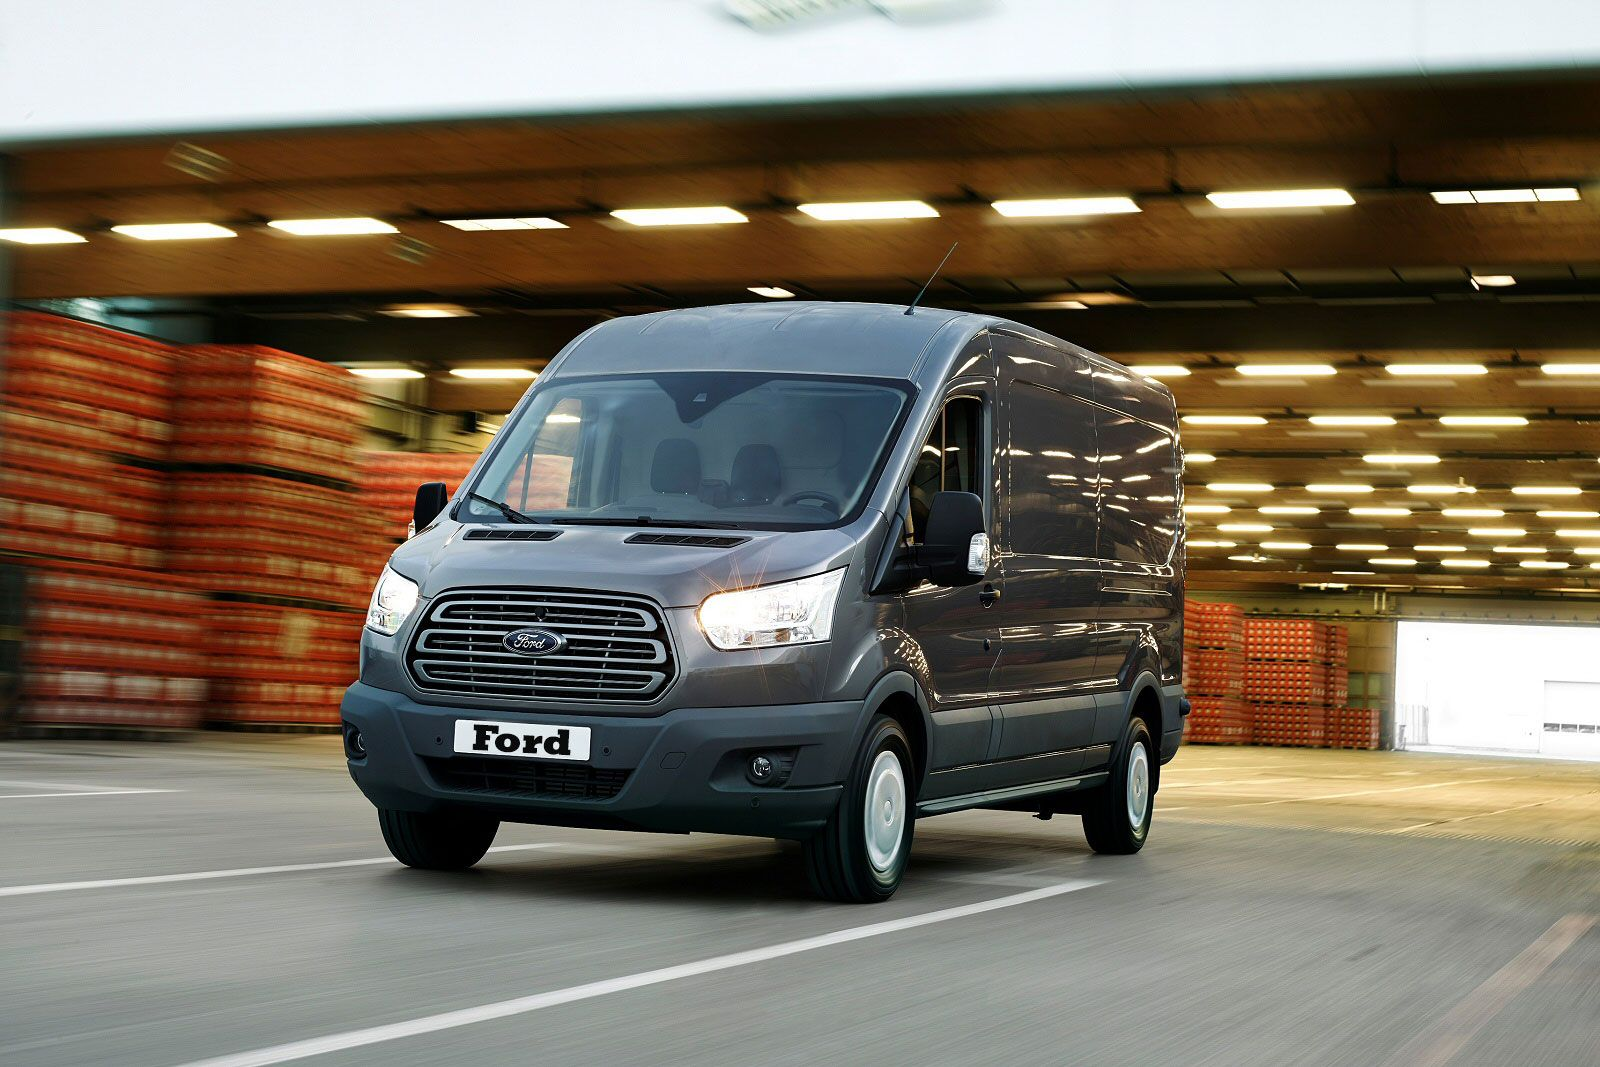 Ford transit connect wagon brings extra utility to family life at a reasonable price